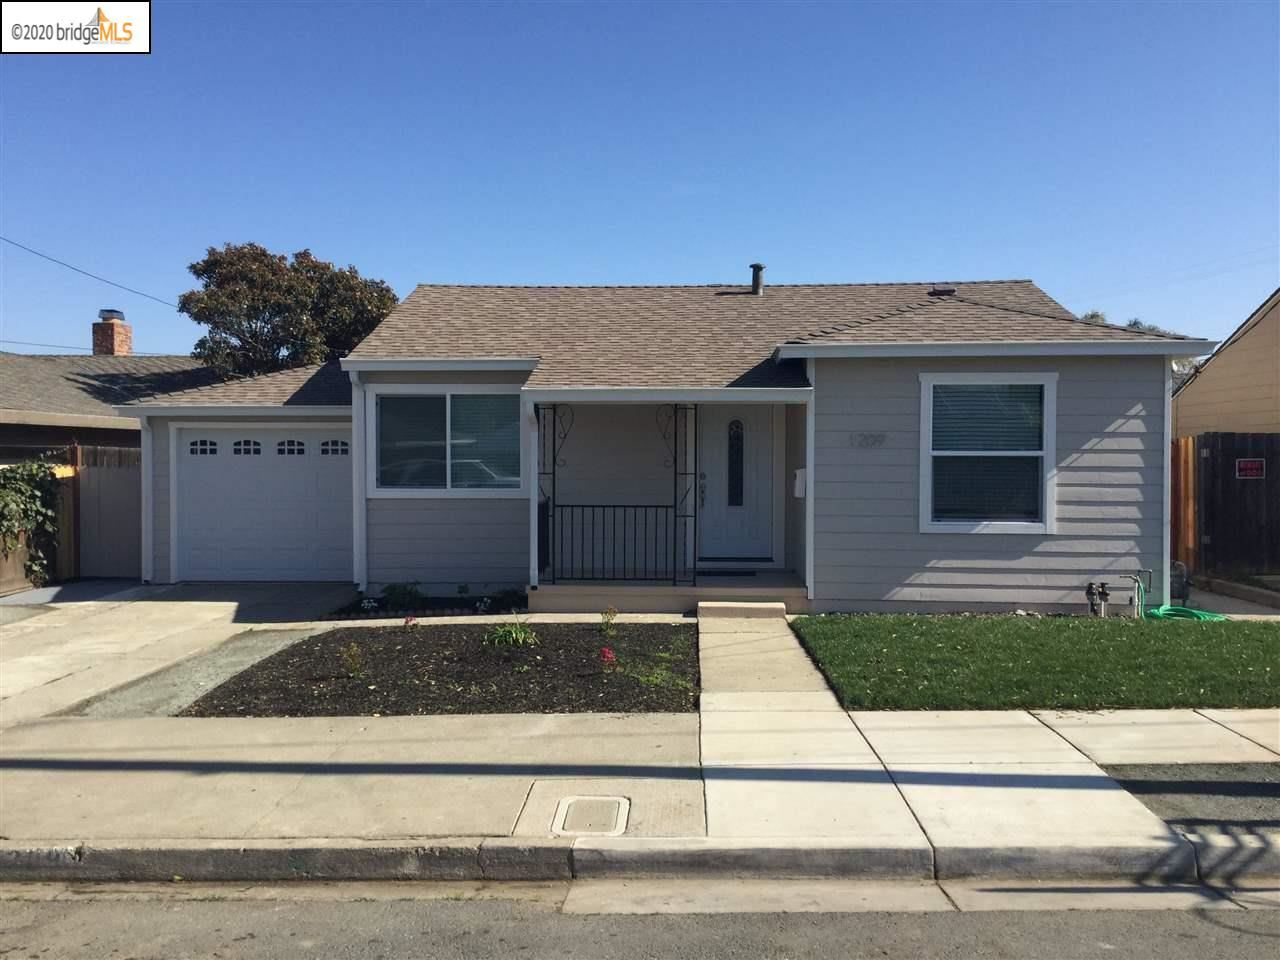 Photo of 1209 Beverly St, ANTIOCH, CA 94509 (MLS # 40900140)